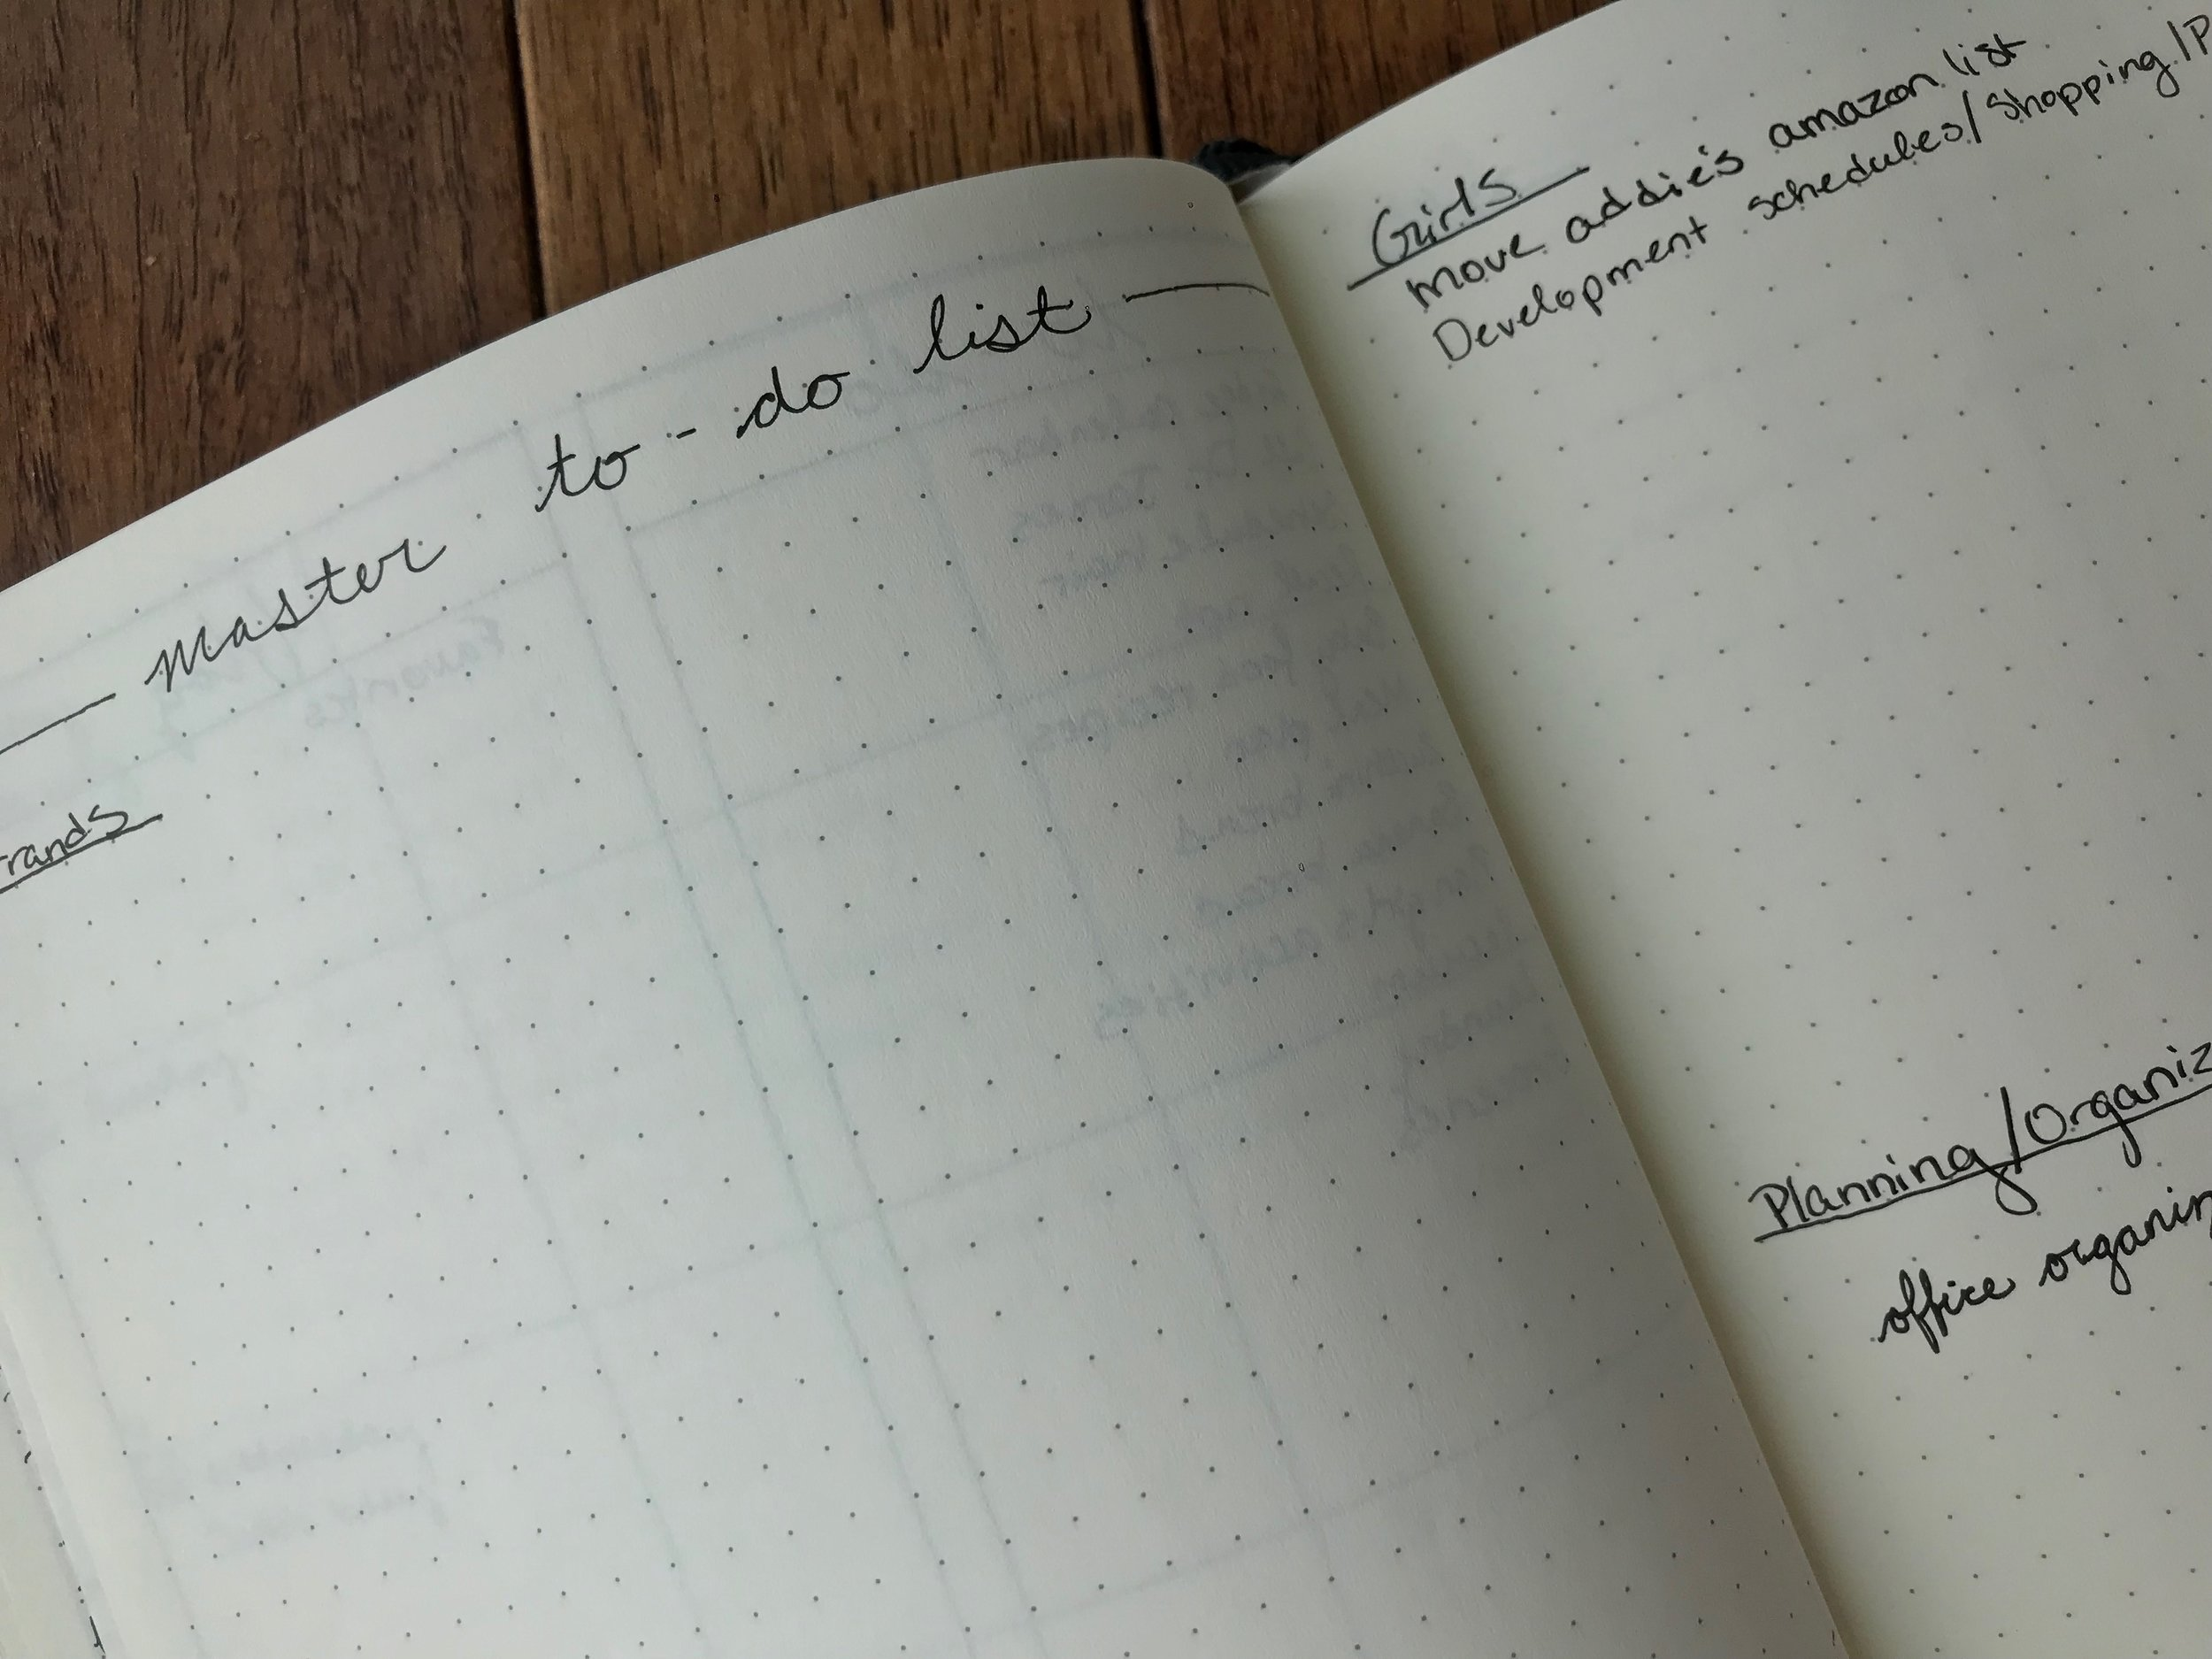 A Master To-Do list